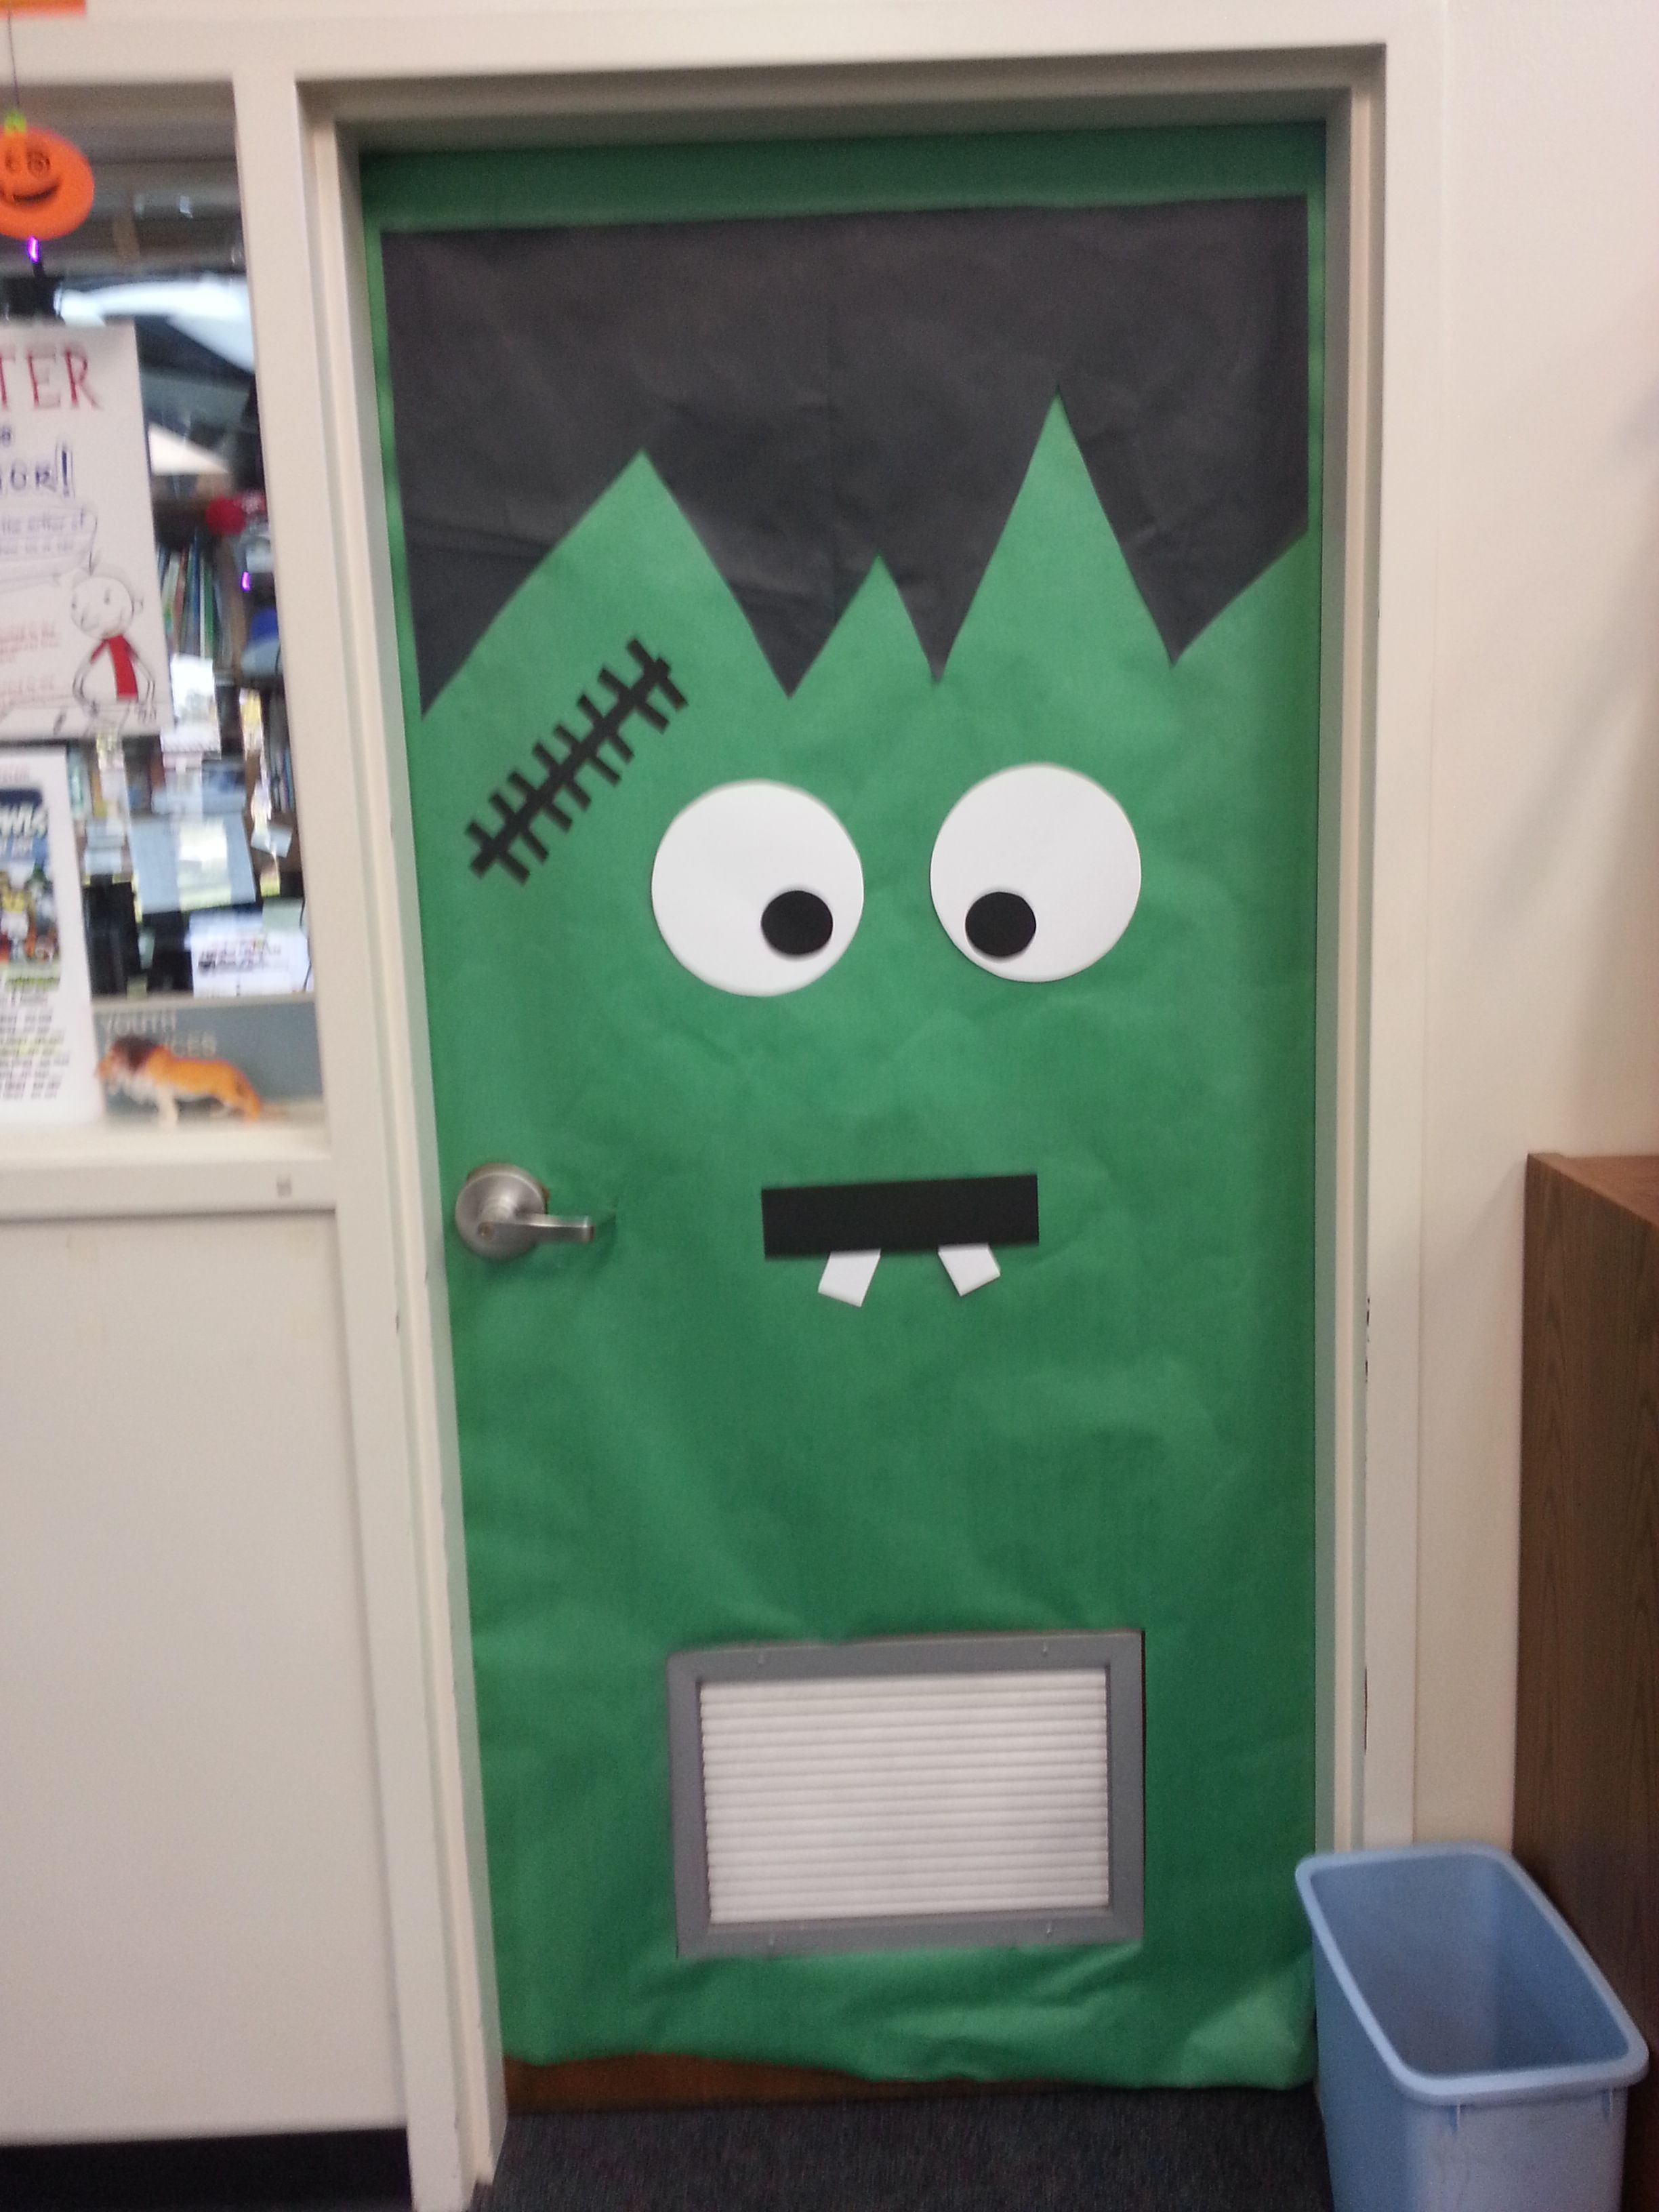 Ms Mary\u0027s office door decorated for Halloween 2014 Office door - Halloween Office Door Decorating Contest Ideas